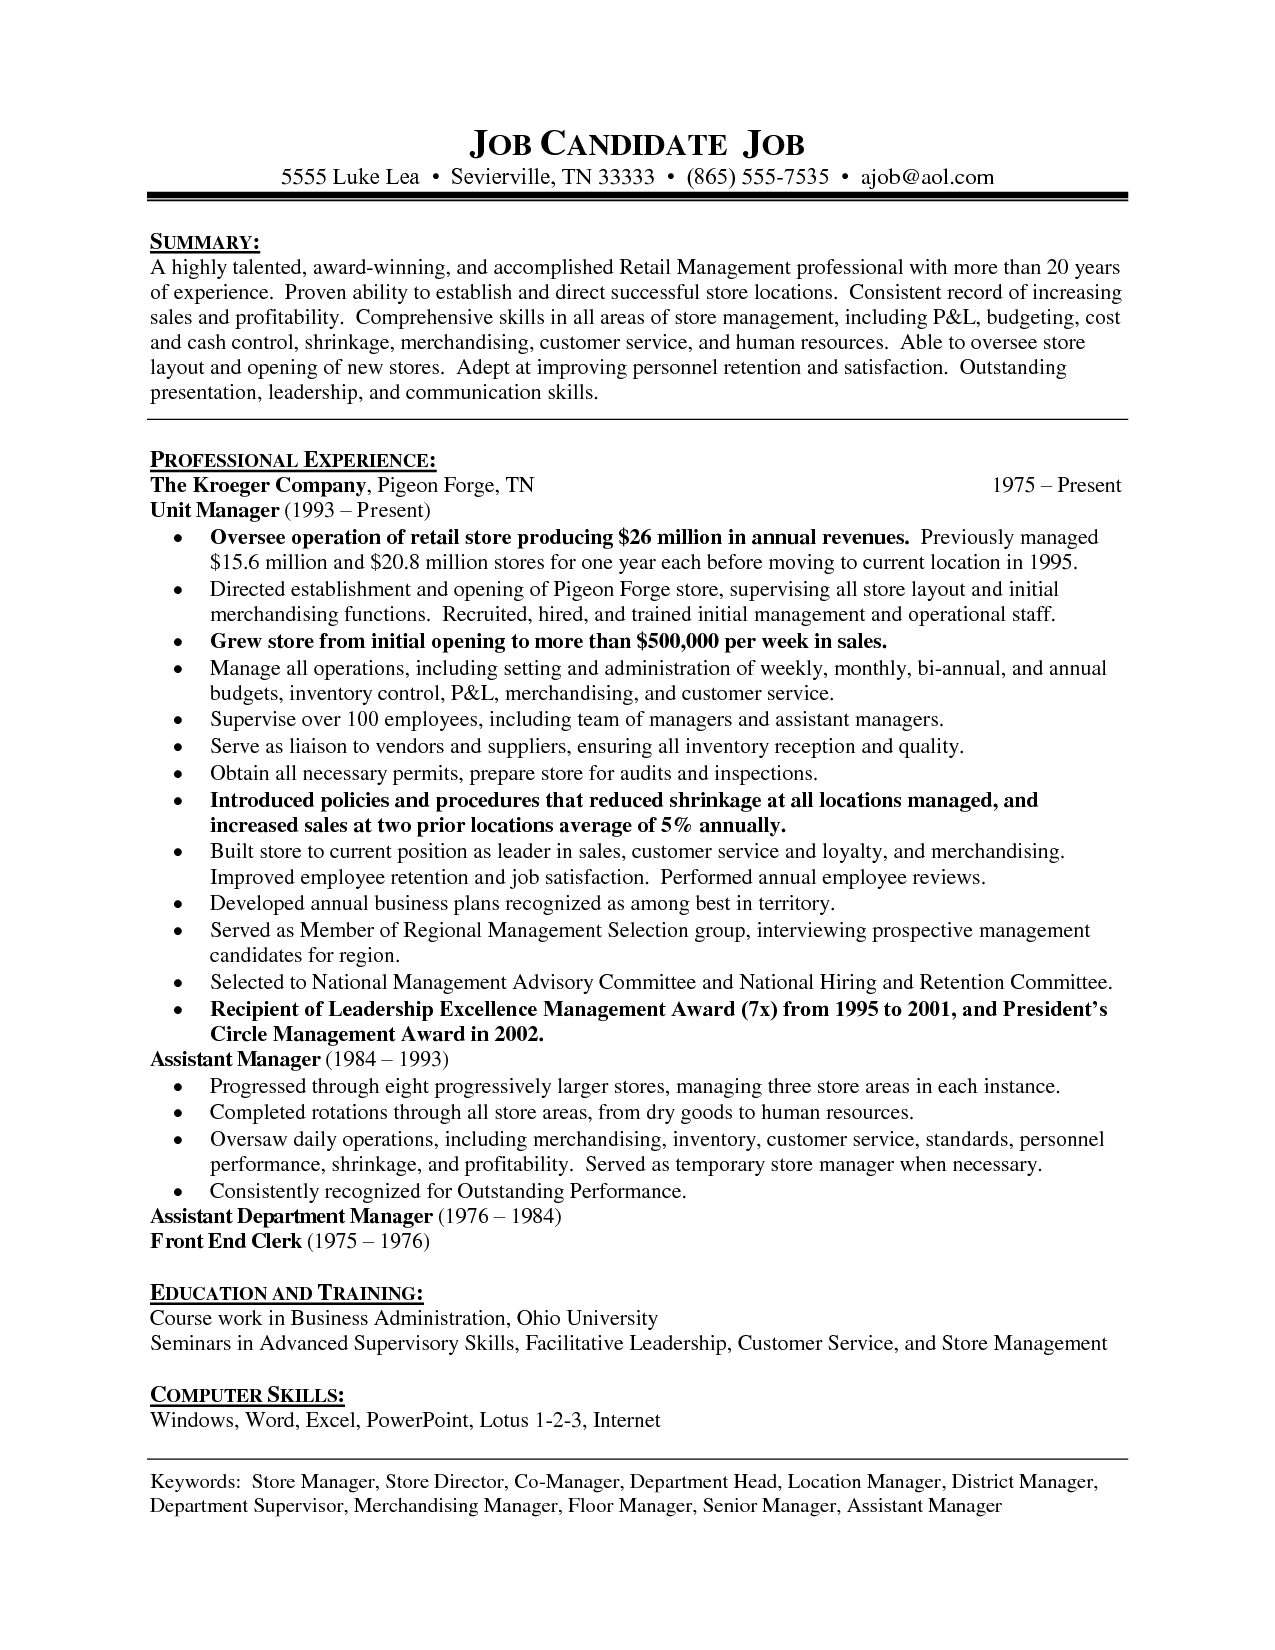 Retail Department Store Manager Resume - Vision specialist | Good ...